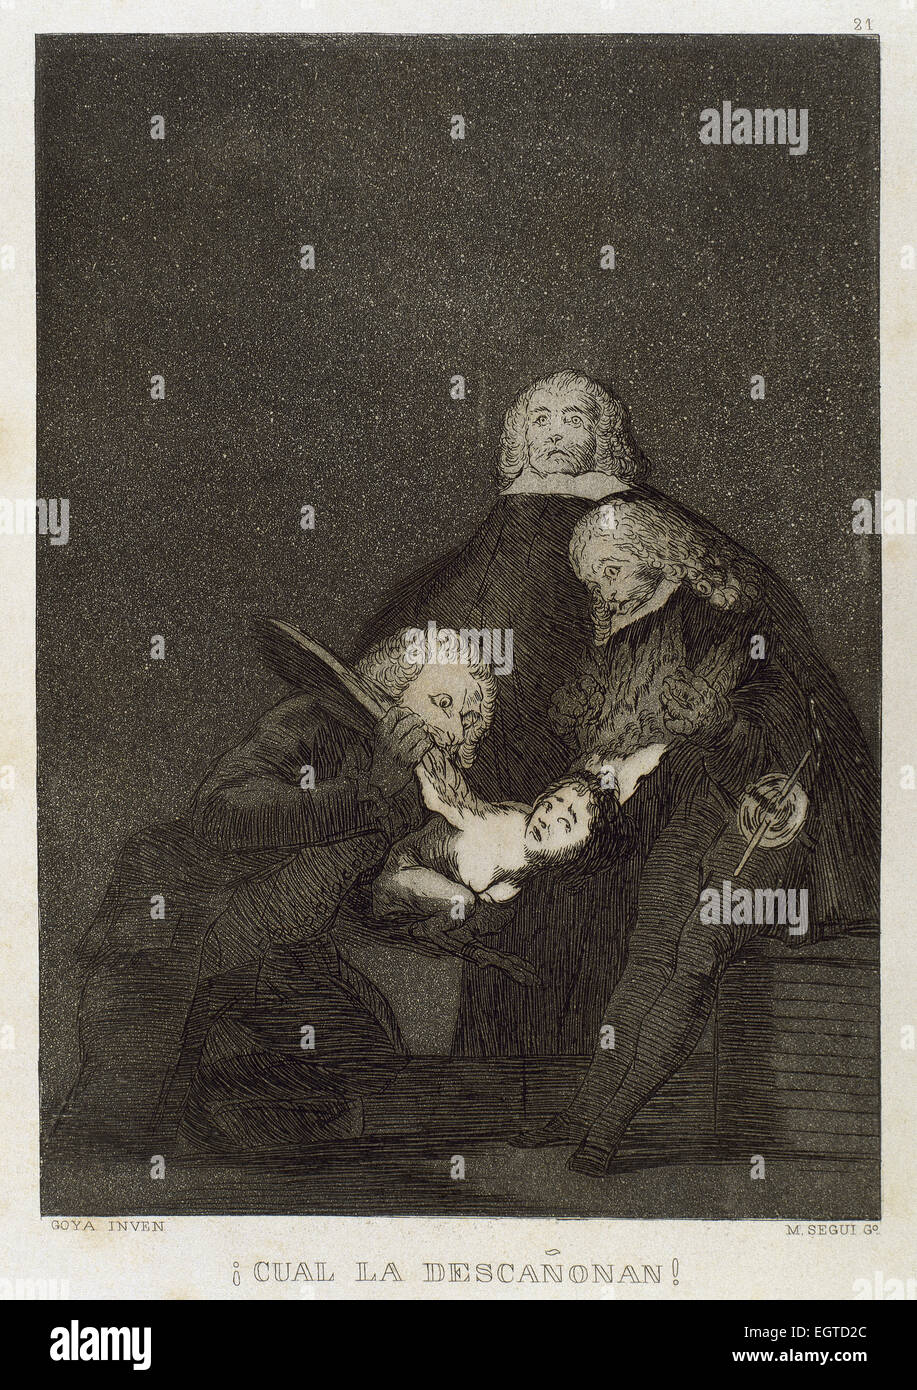 Francisco Goya (1746-1828). Caprices. Plaque 21. How they pluck her !. 18th century. Prado Museum. Madrid. Spain. - Stock Image